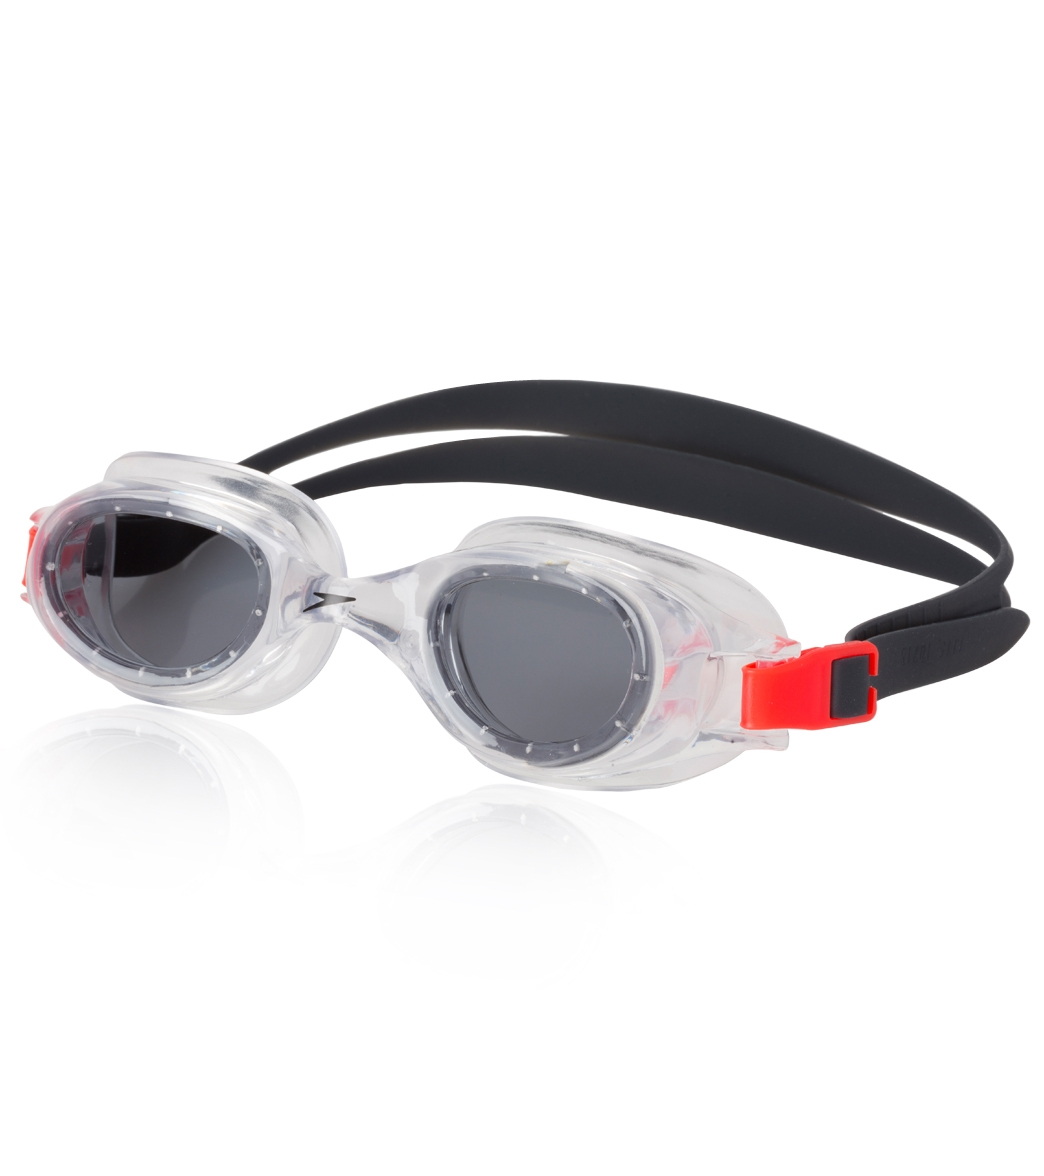 Speedo Hydrospex Swimming Goggles For Beginners